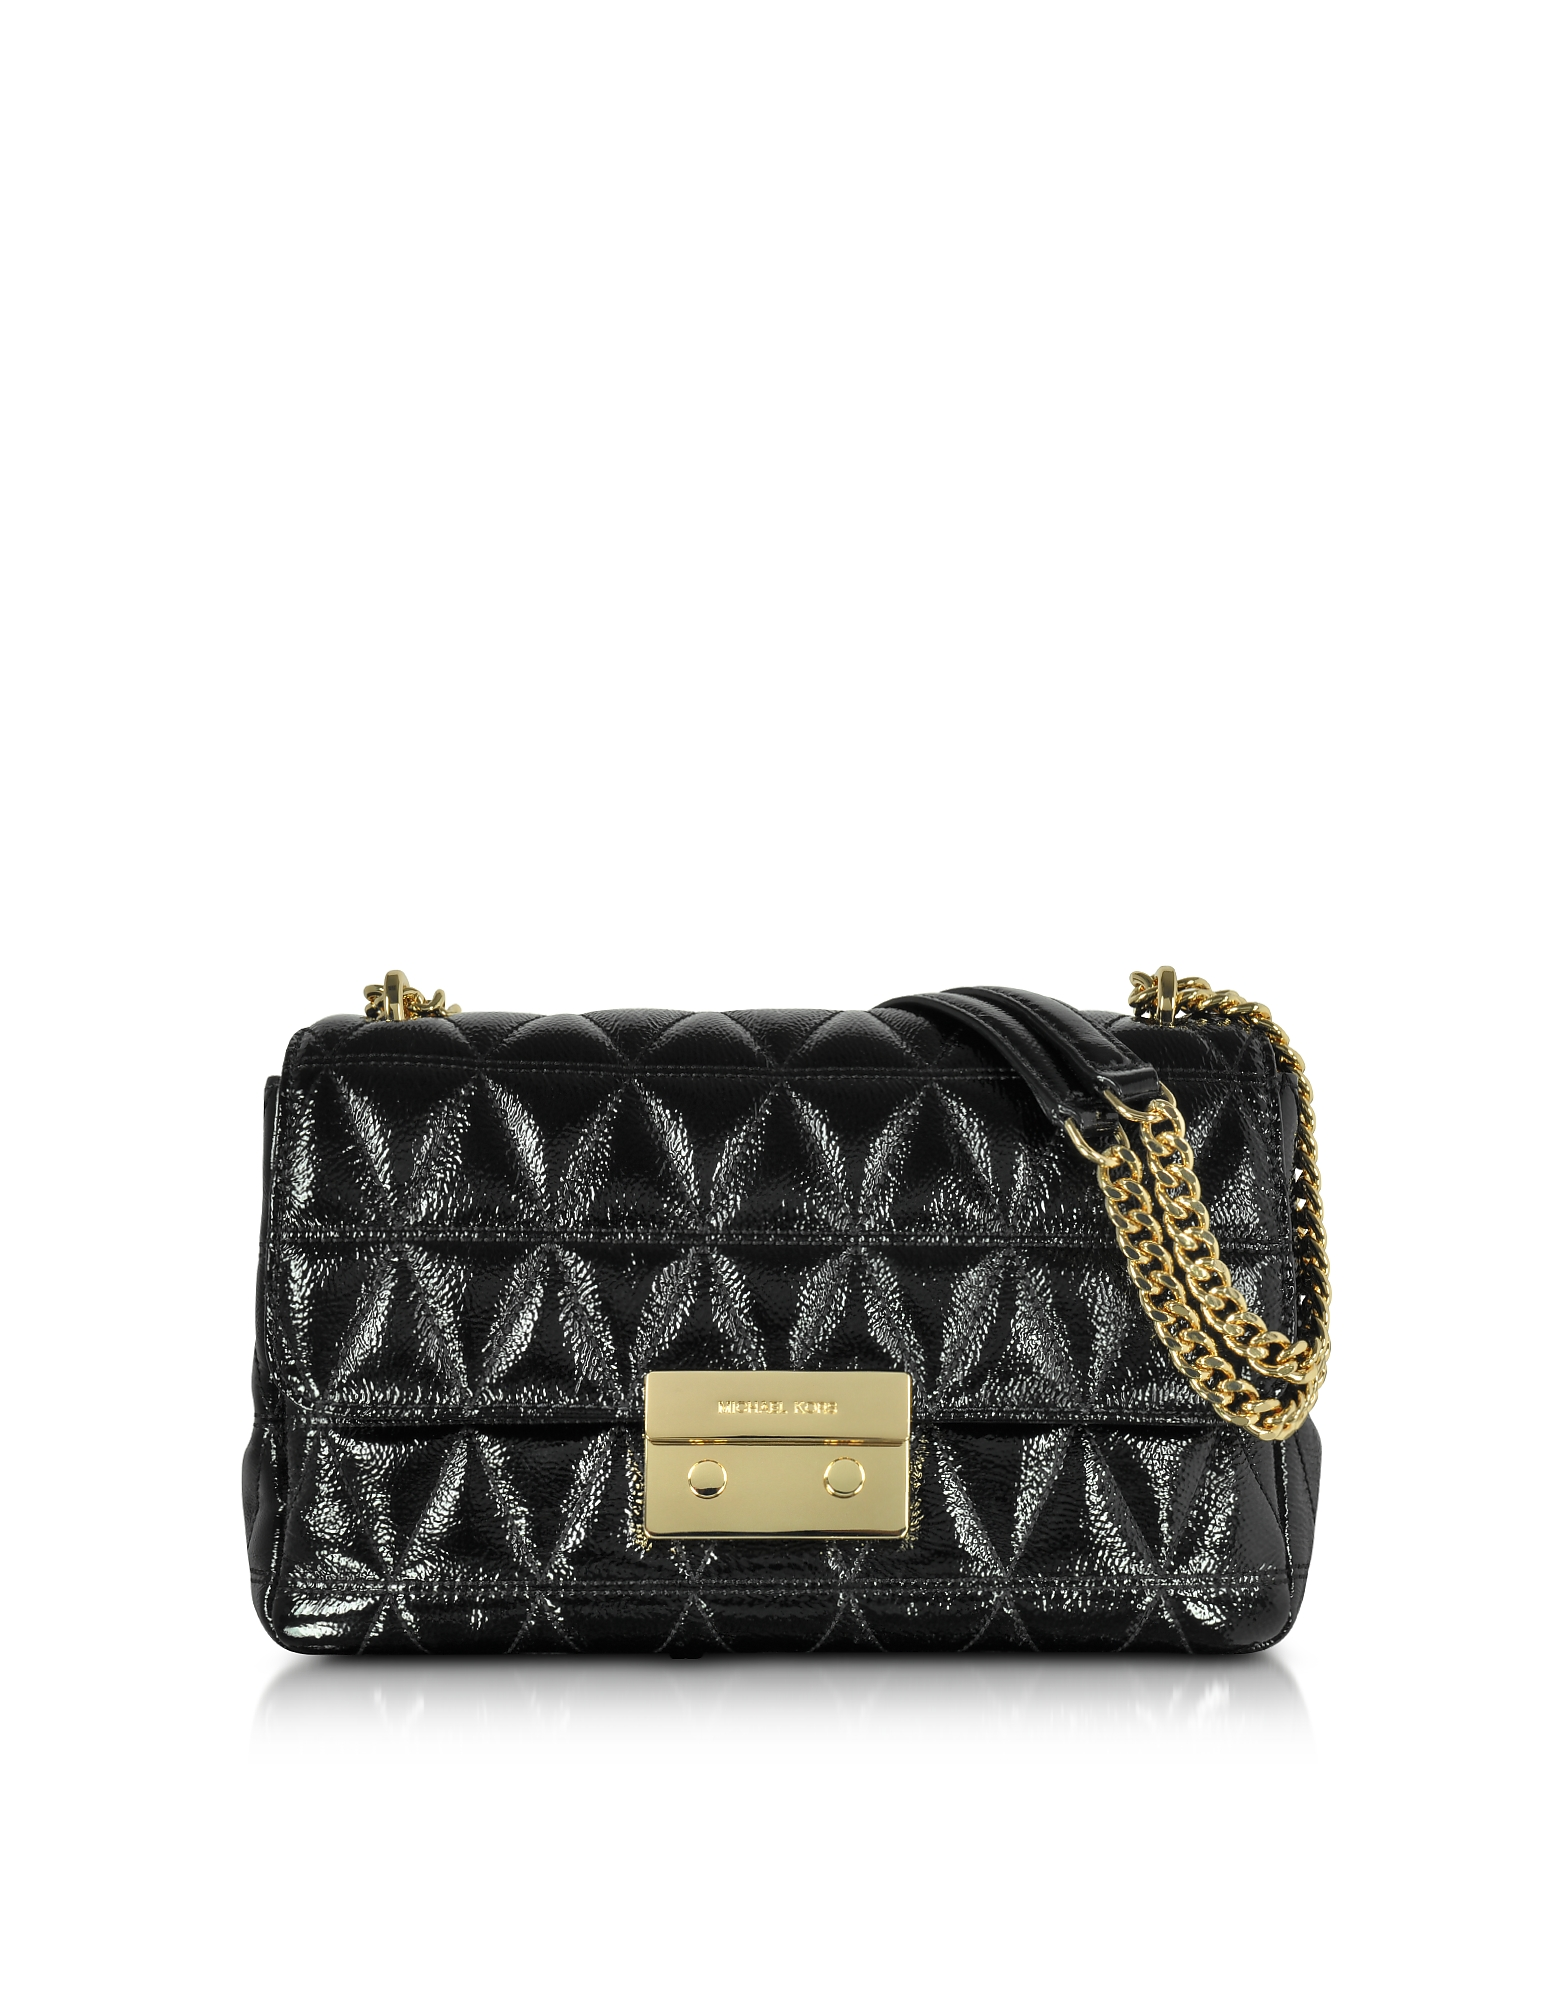 Michael Kors Handbags, Sloan Large Black Quilted Patent Leather Chain Shoulder Bag